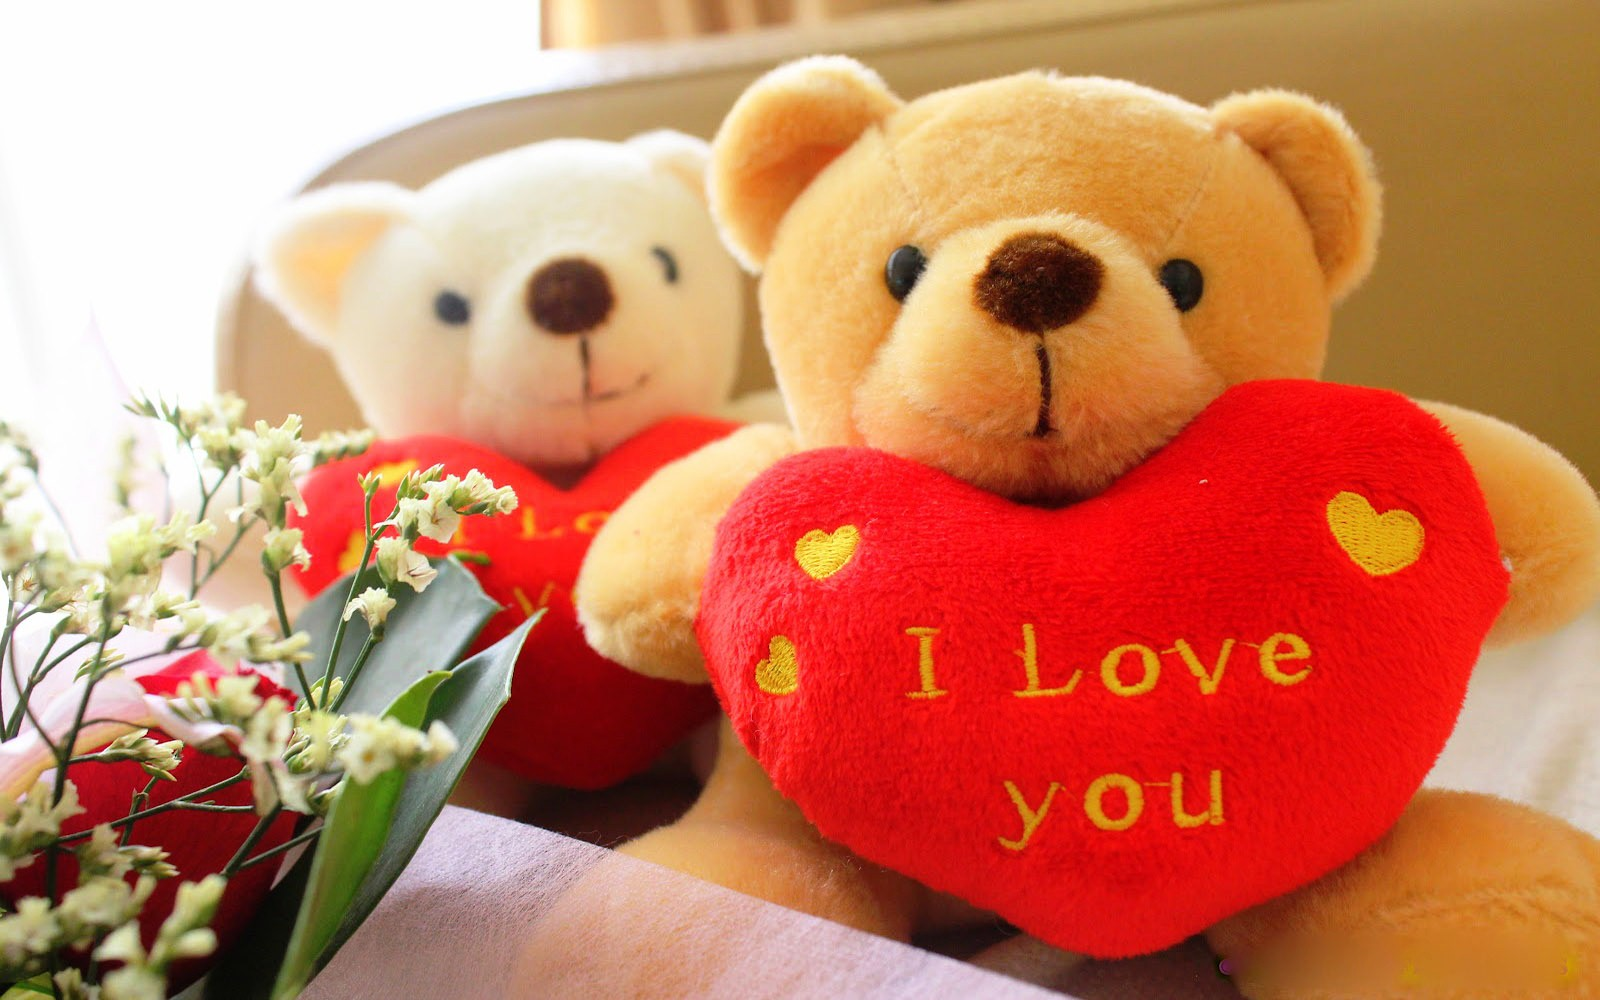 download teddy bear wallpaper I love you